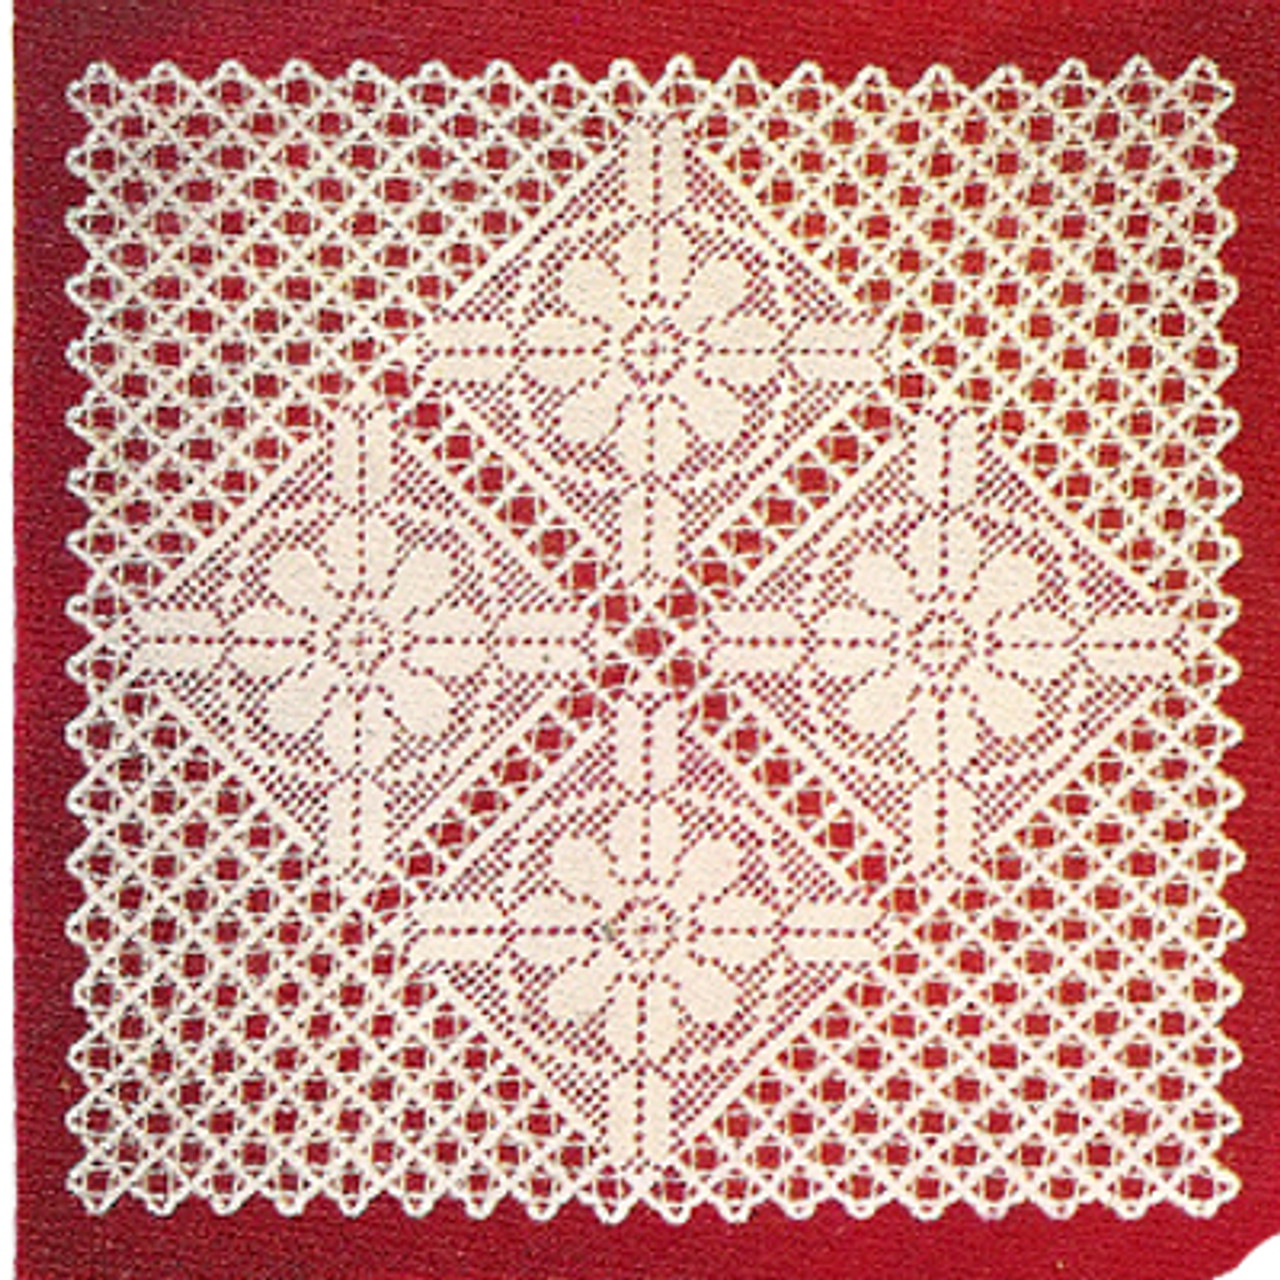 Square Filet Crochet Doily Pattern is 17 inches